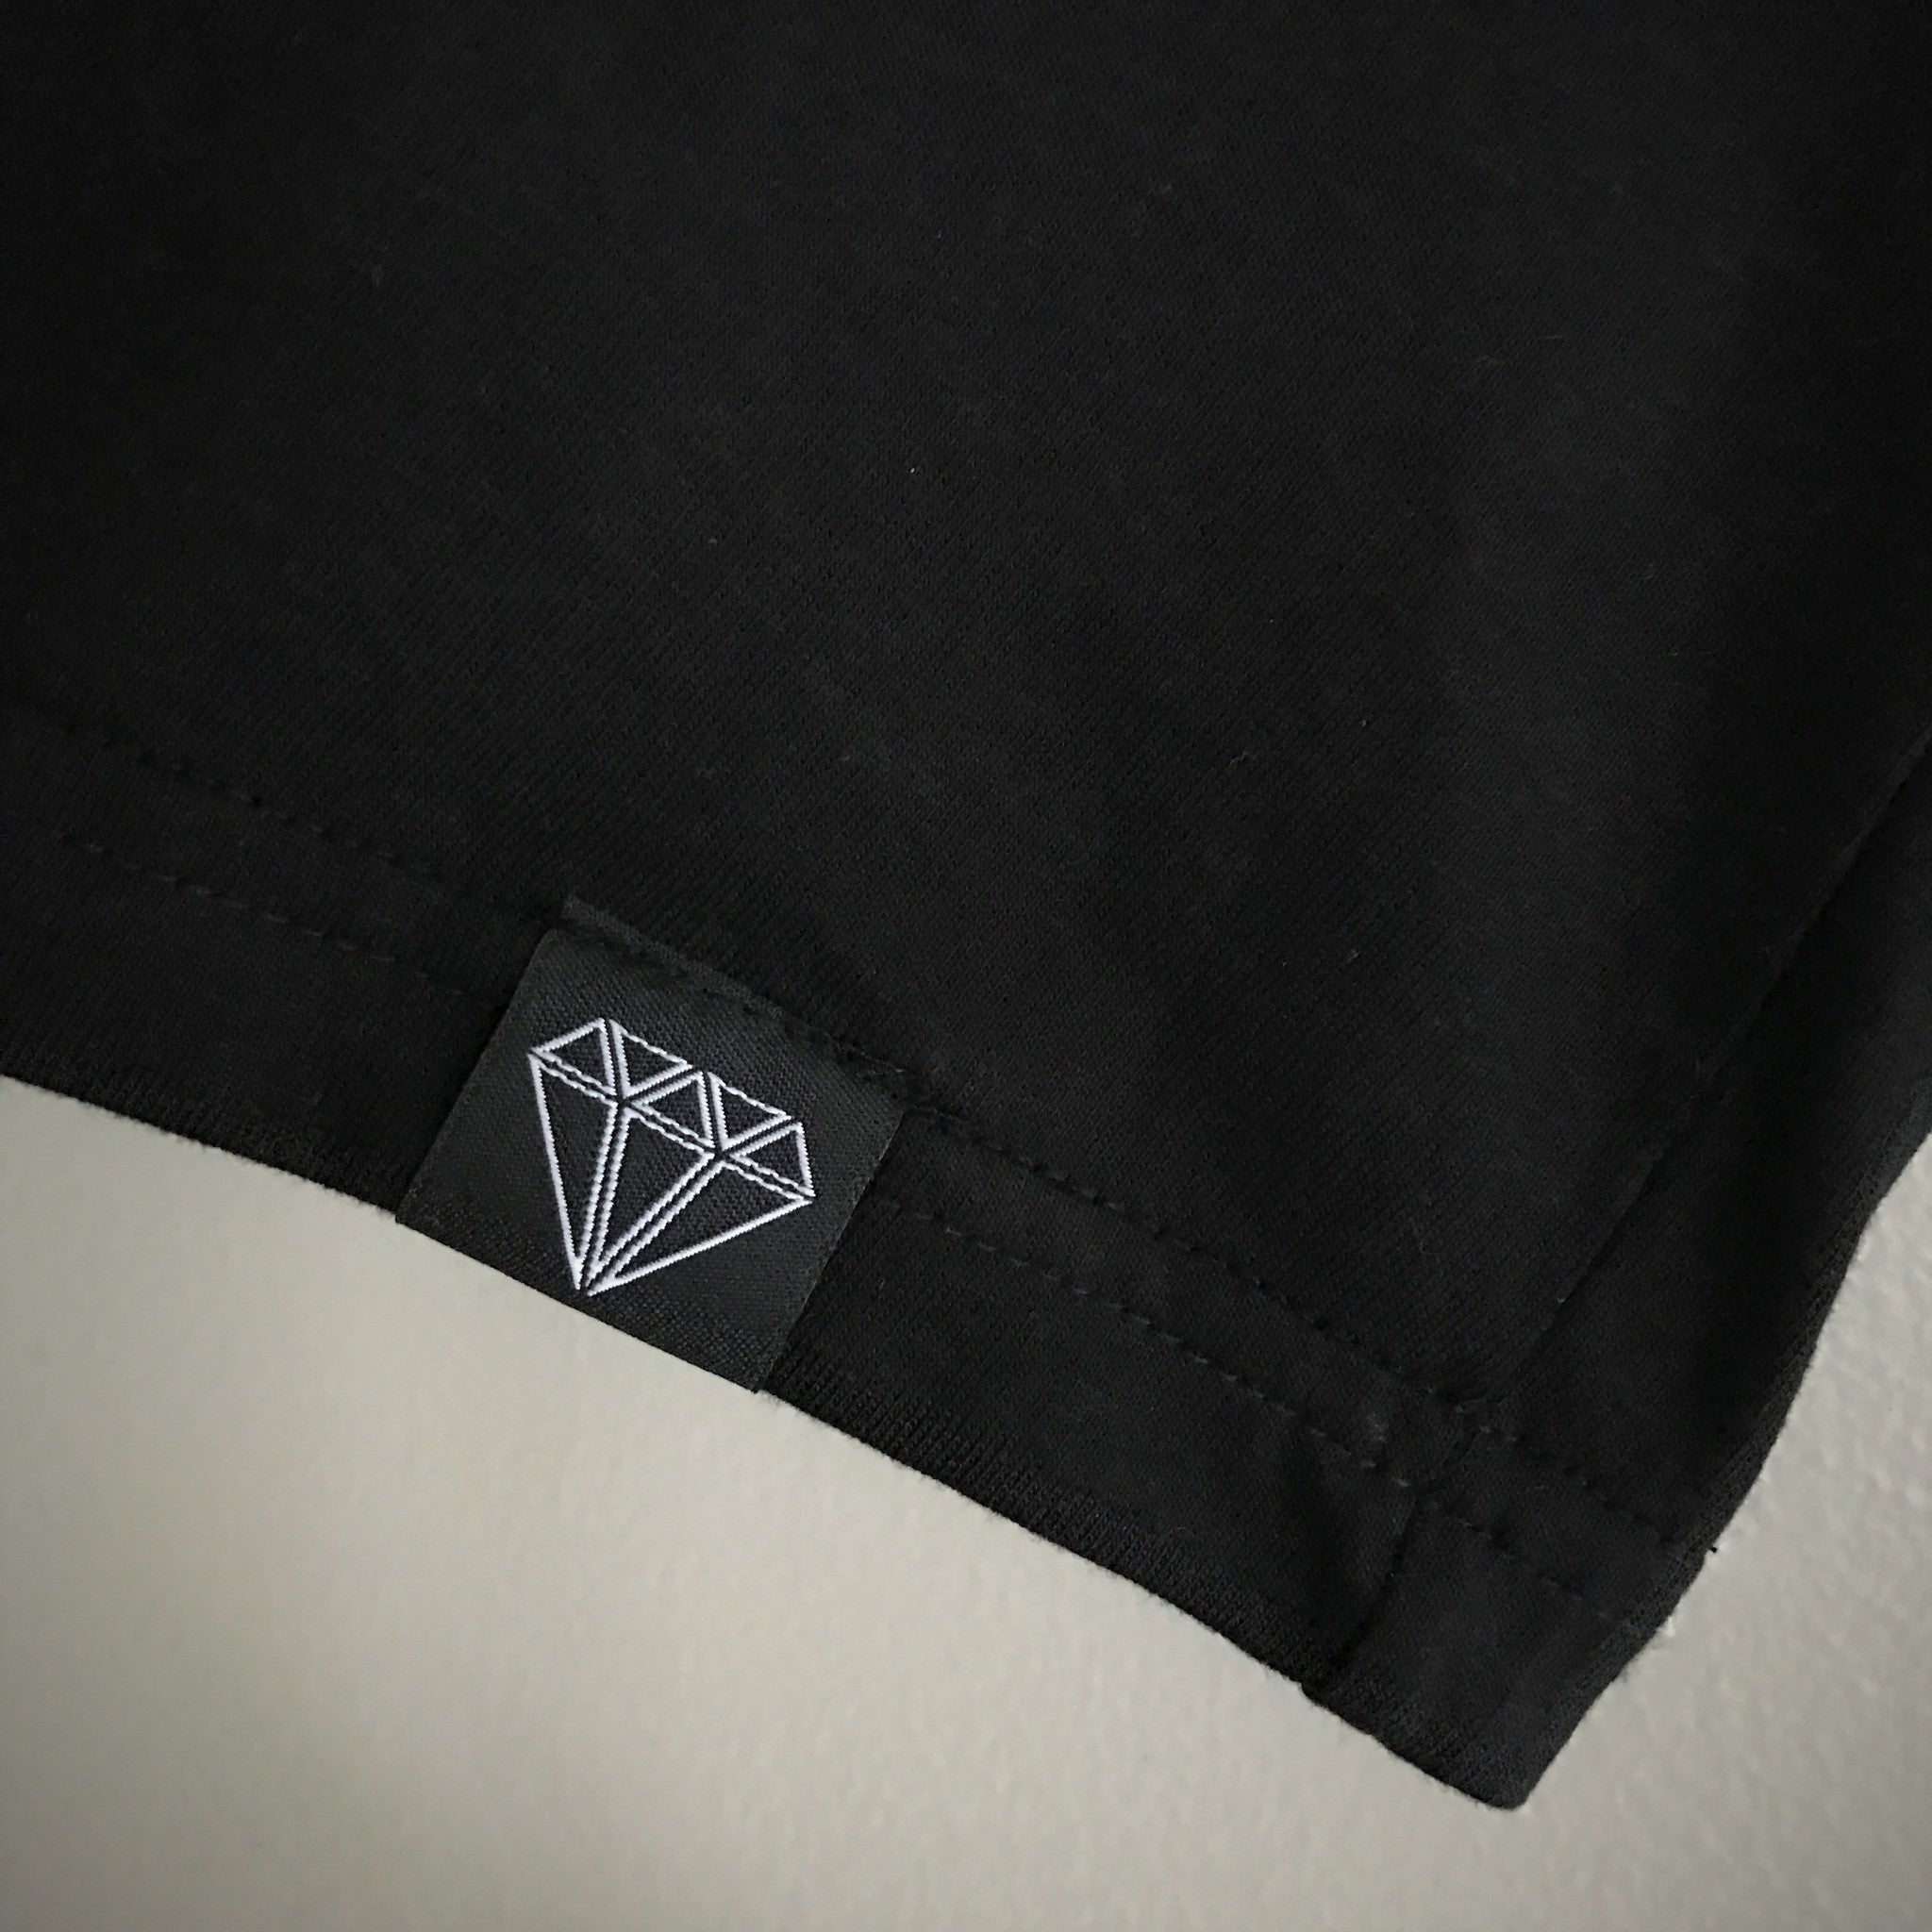 DMDGNG Tee - Black-Diamond Gang